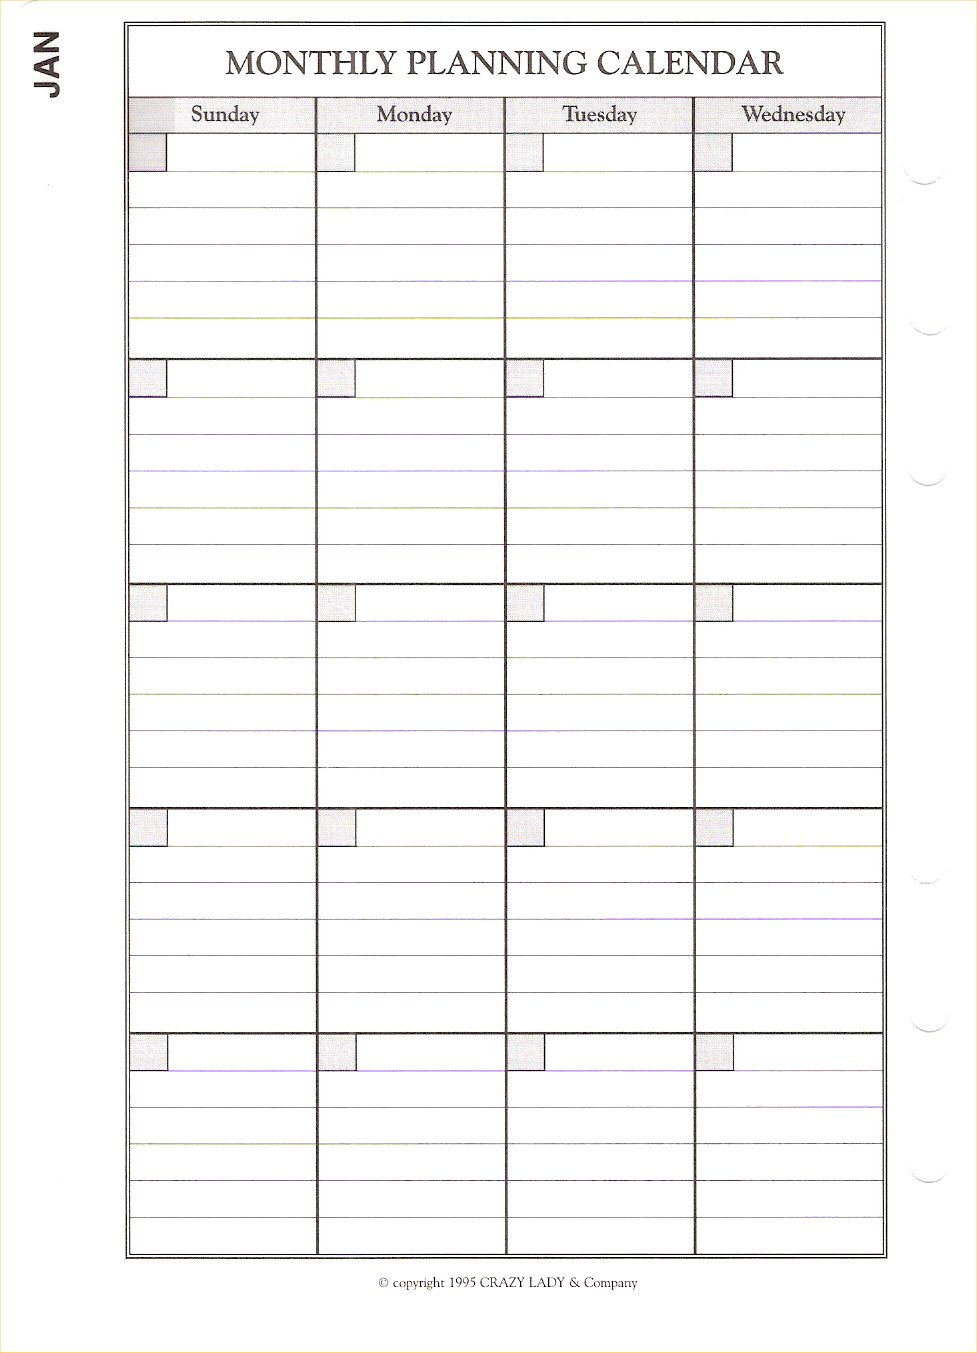 Html Calendar Planner Code : Planner pages big crazy lady day